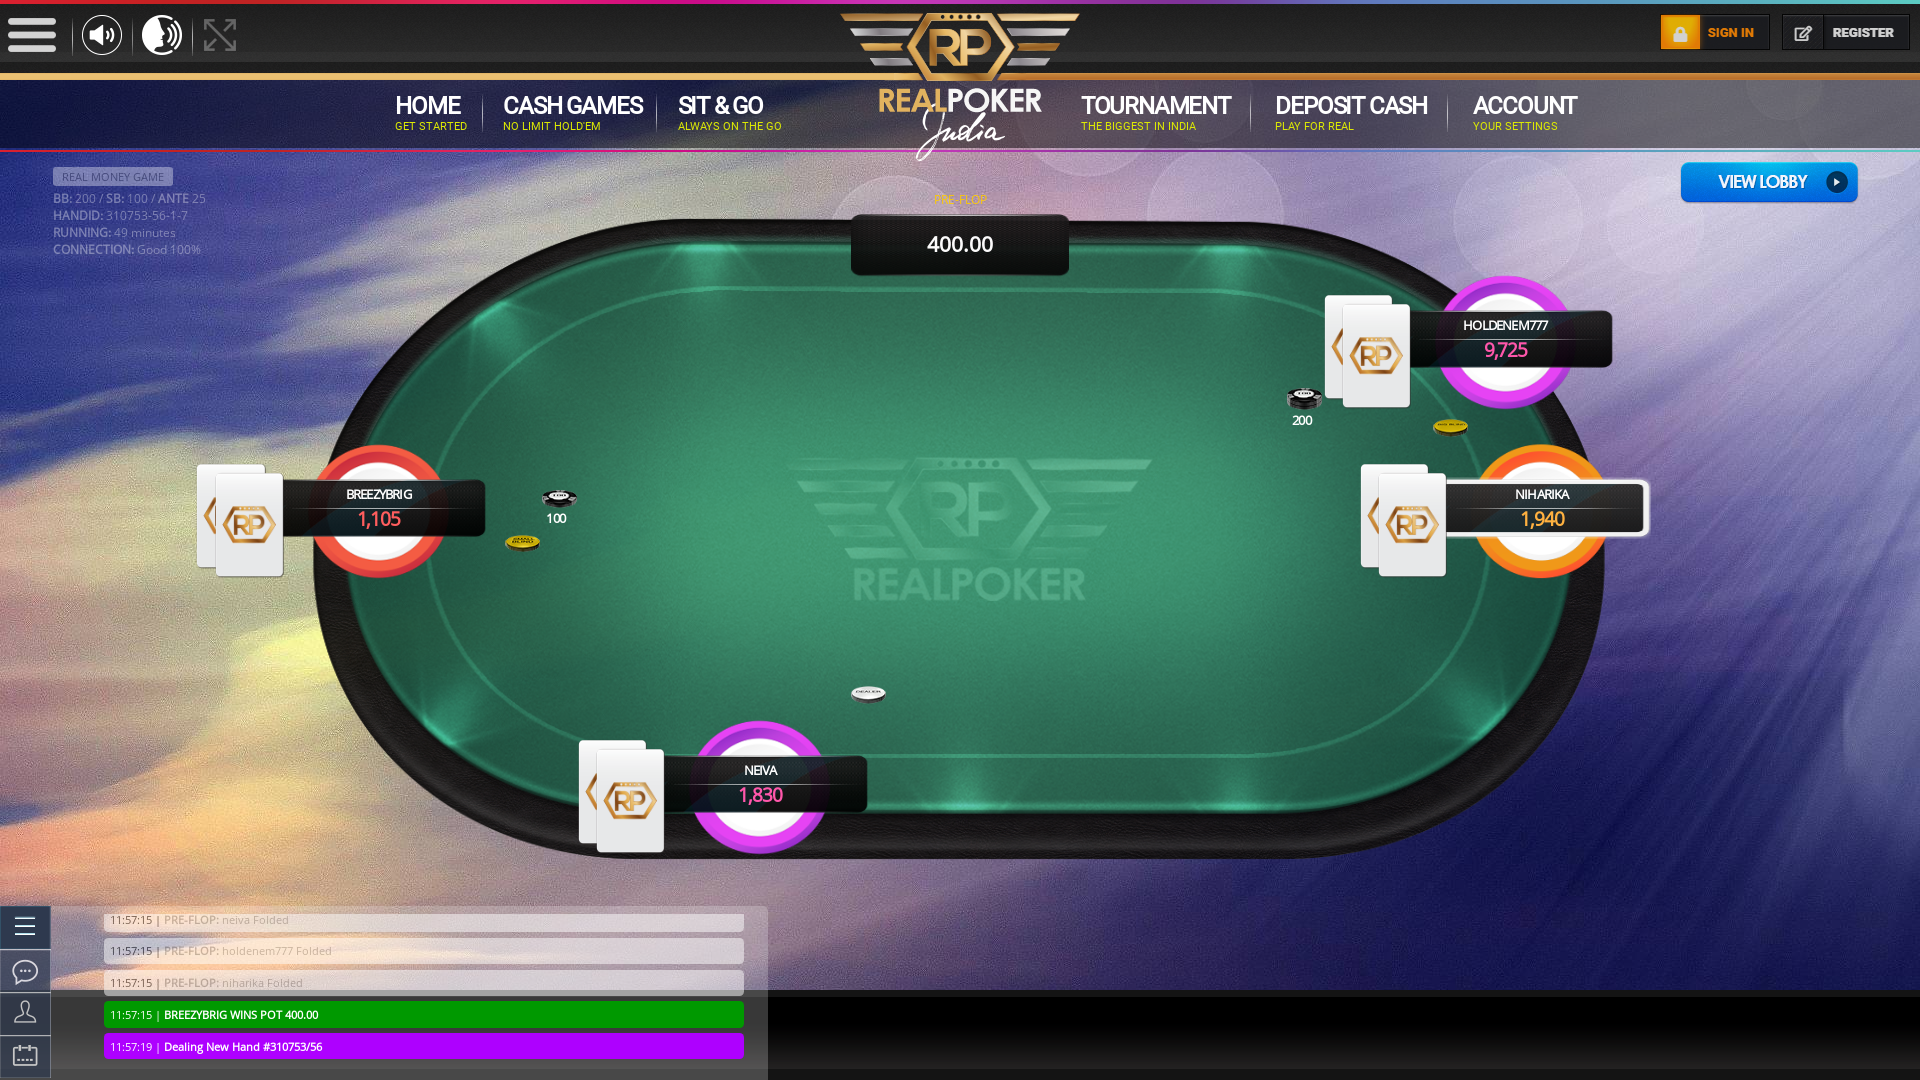 Indian online poker on a 10 player table in the 49th minute match up